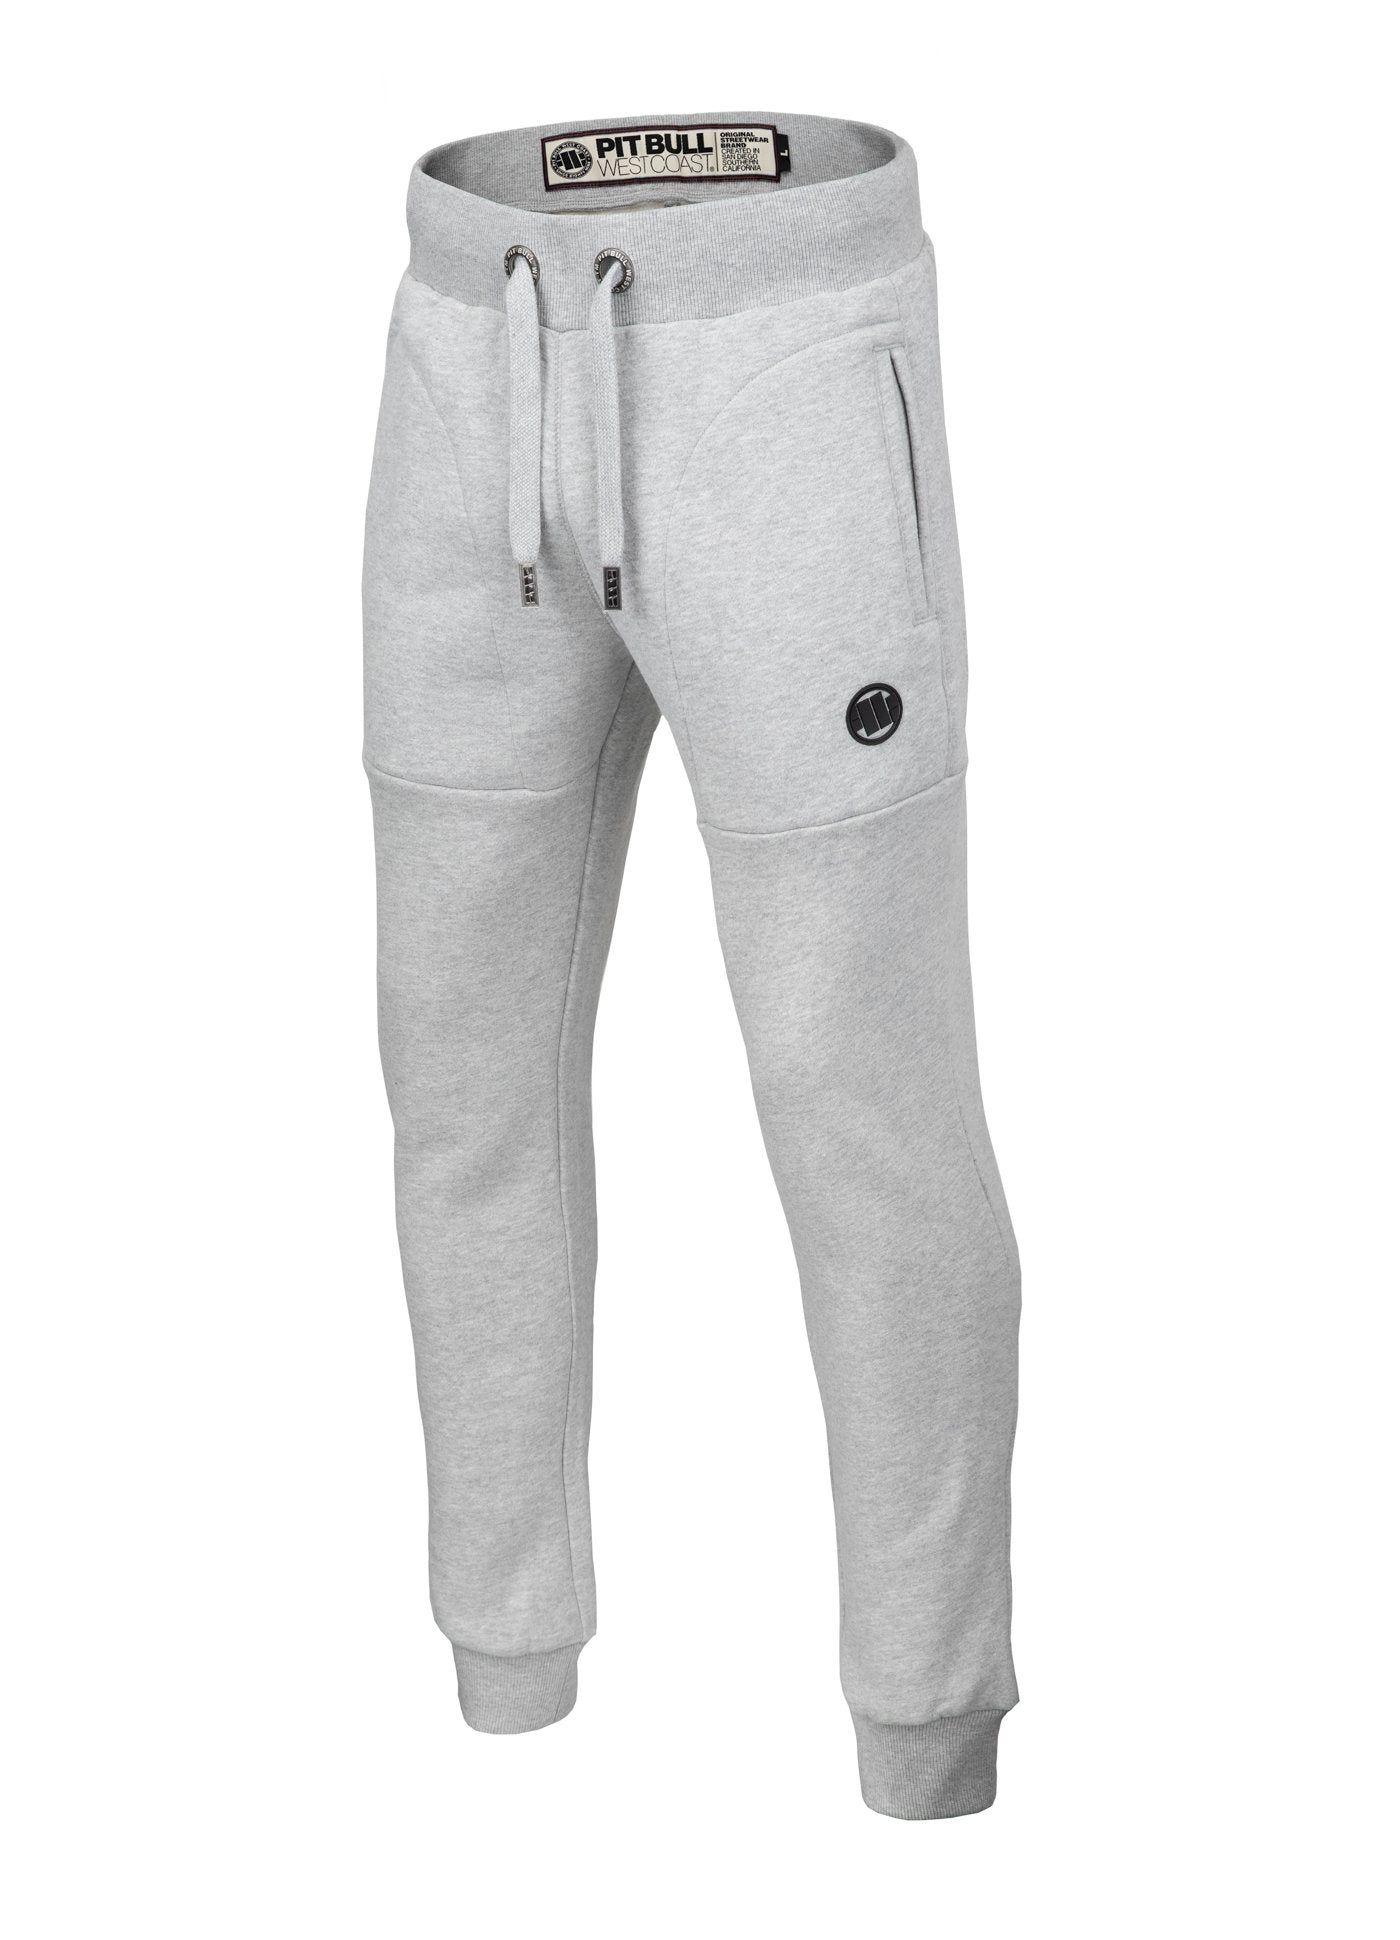 TRACK PANTS SMALL LOGO GREY MLG - pitbullwestcoast